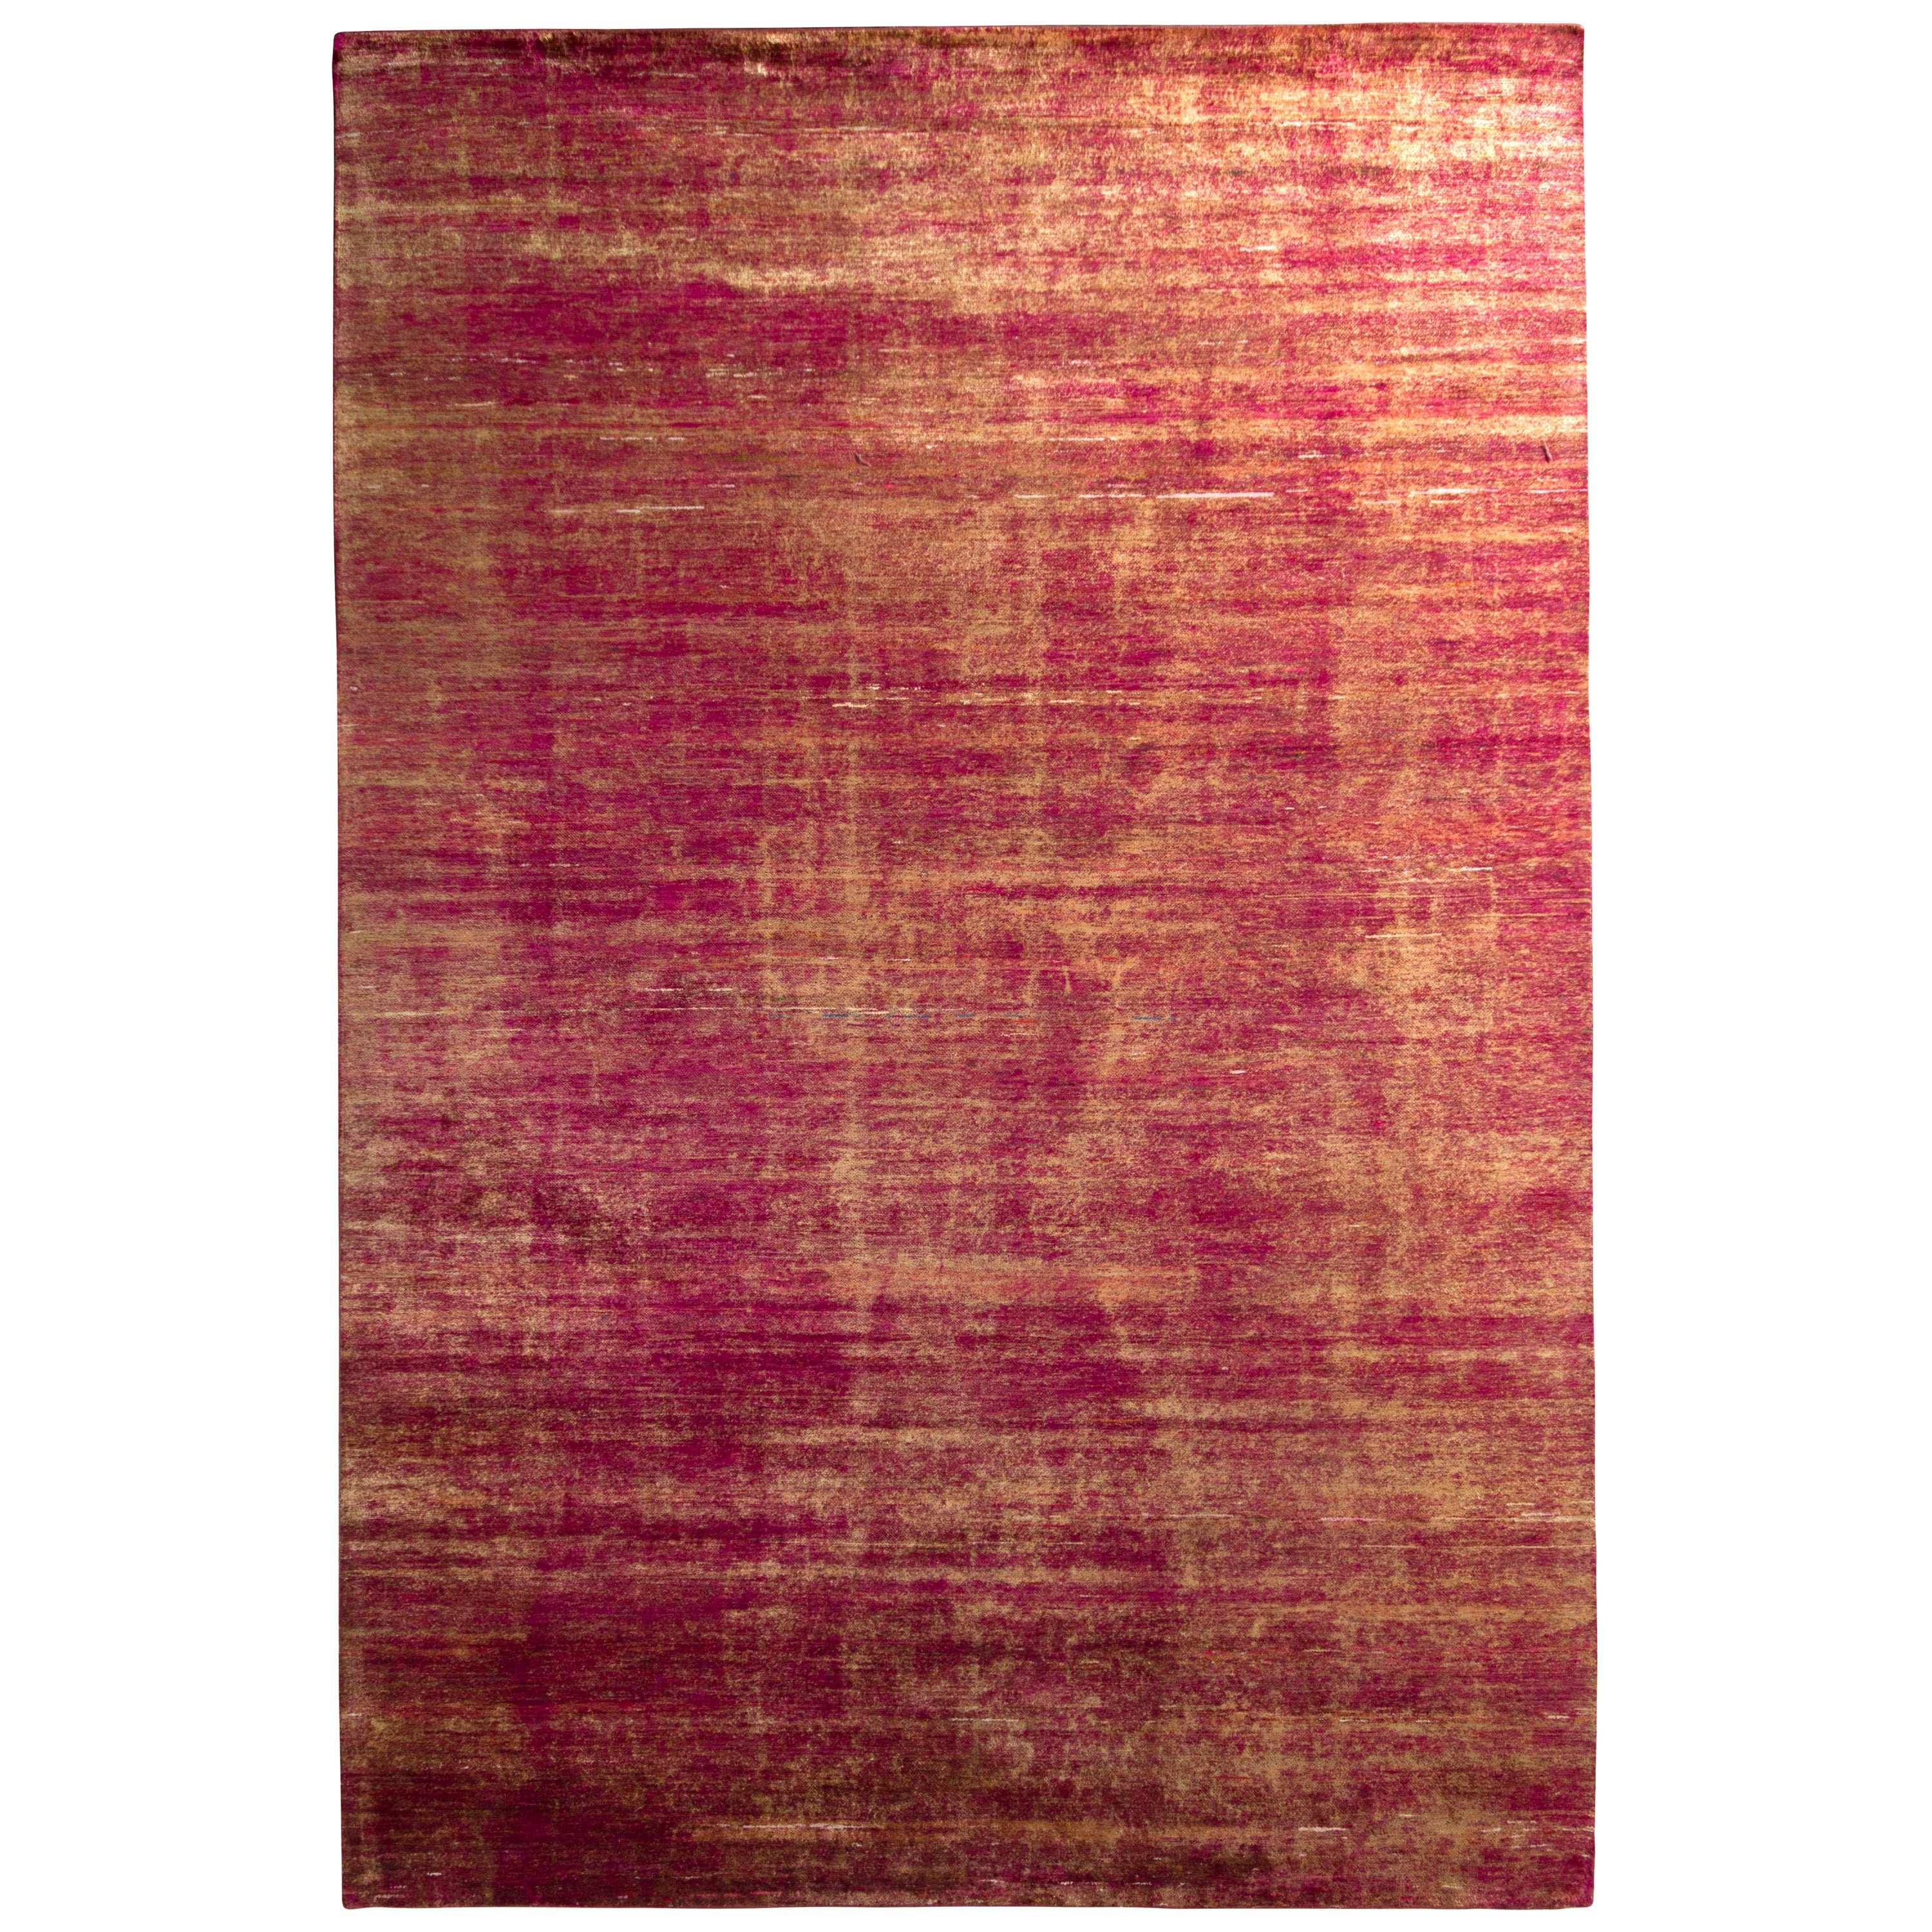 Handmade Modern Rug Red and Gold Abrashed Striped Pattern by Rug & Kilim